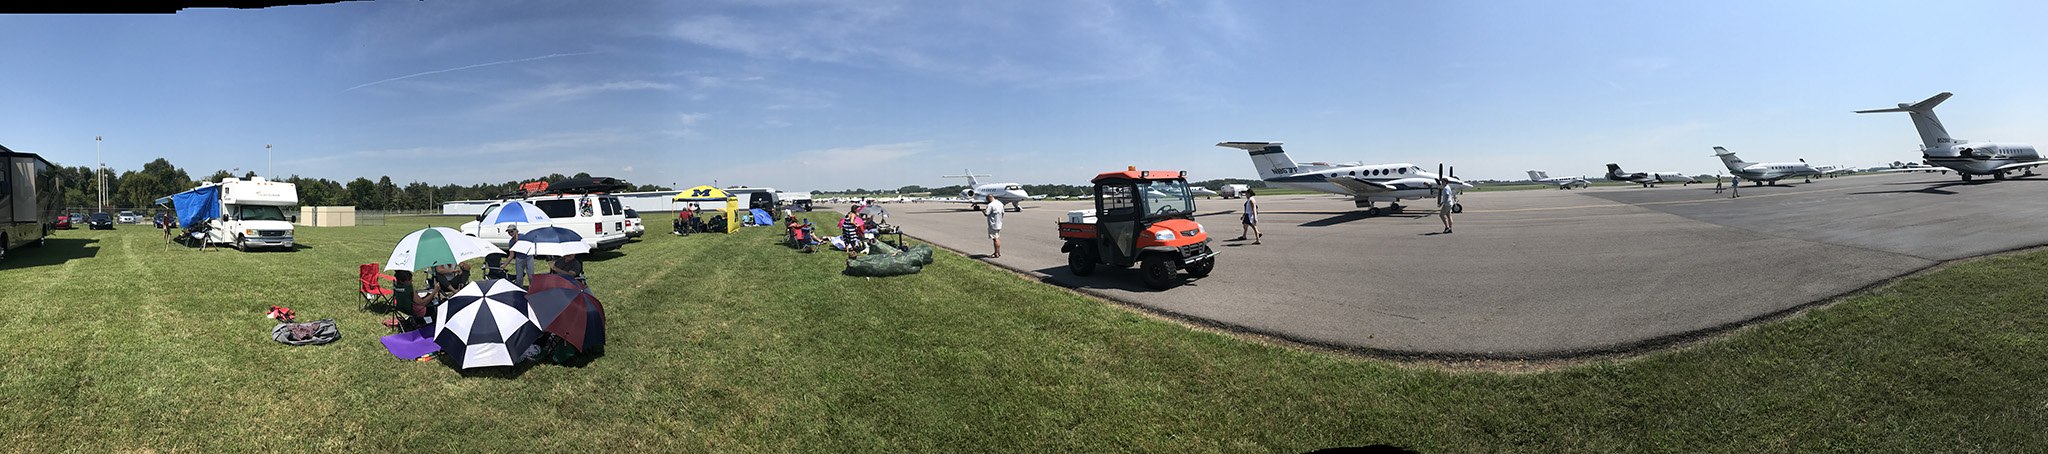 Clarksville airport as totality approached